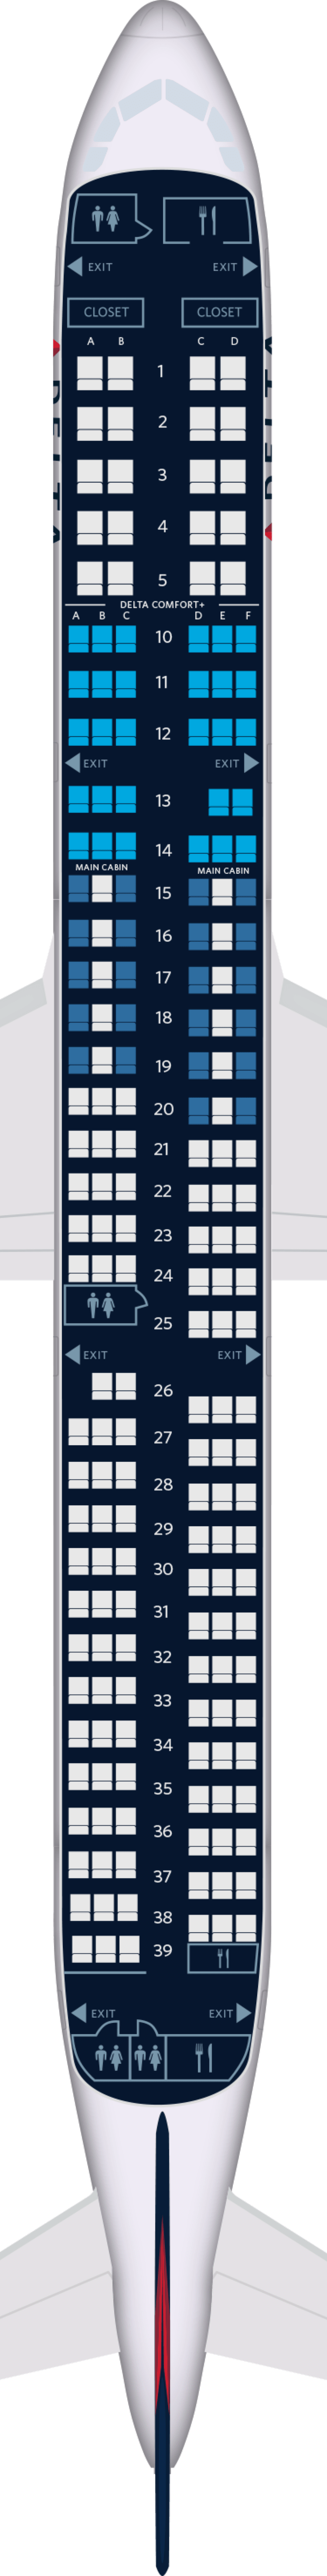 Airbus A321 Aircraft Seat Maps, Specs & Amenities